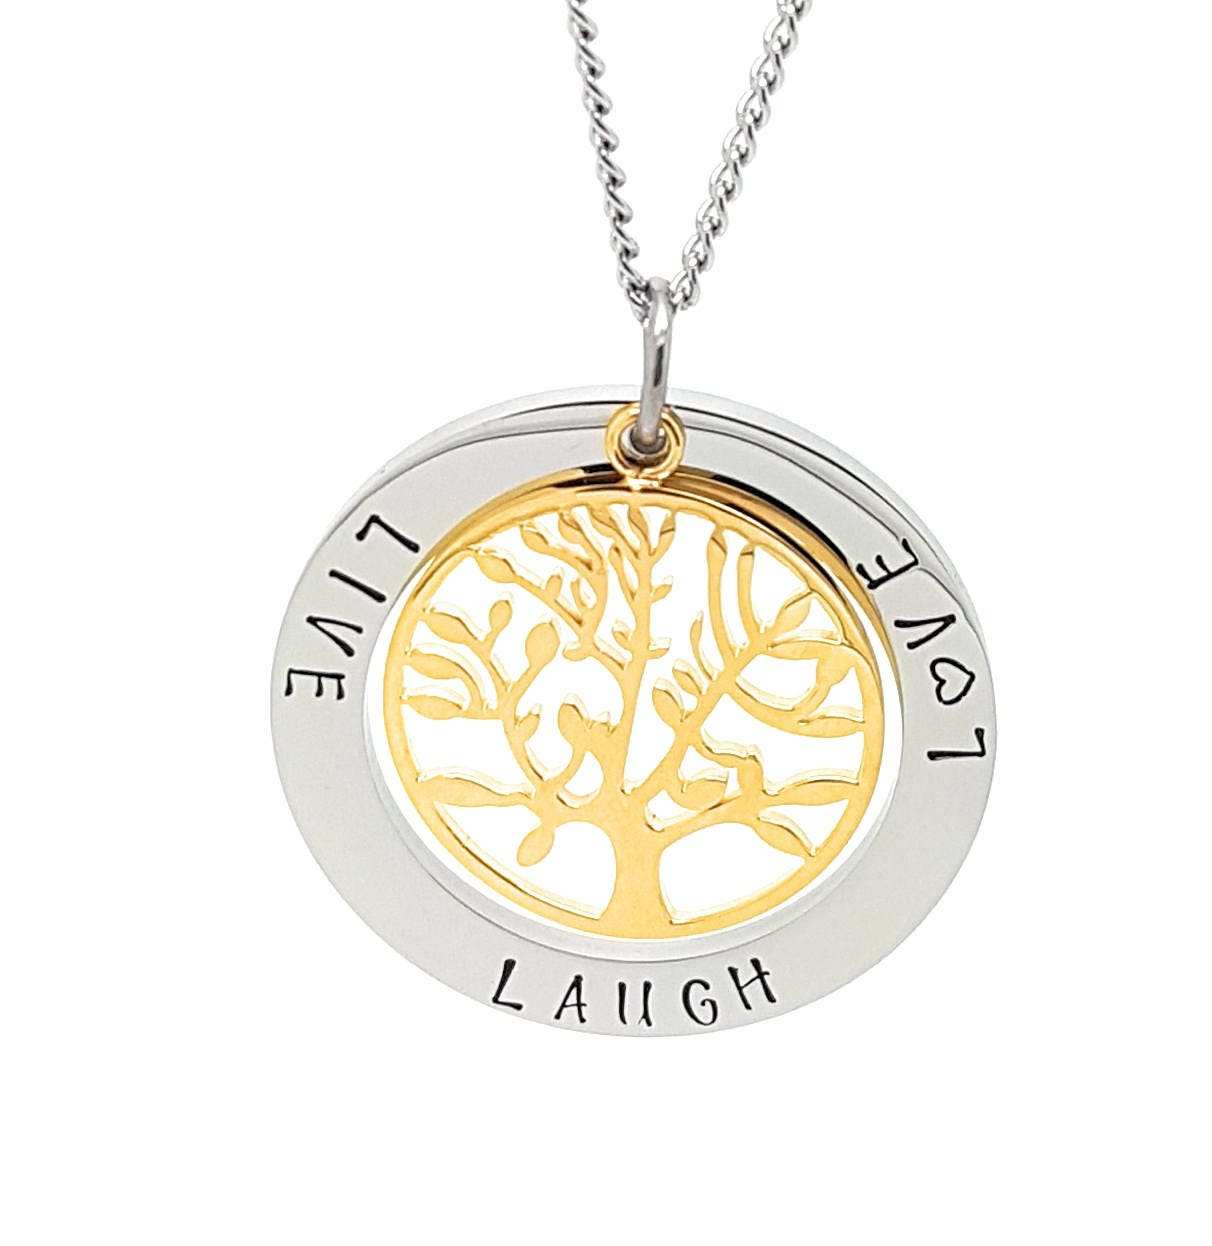 Coorabell crafts live laugh love pendant with silver circle and gallery photo gallery photo gallery photo gallery photo buycottarizona